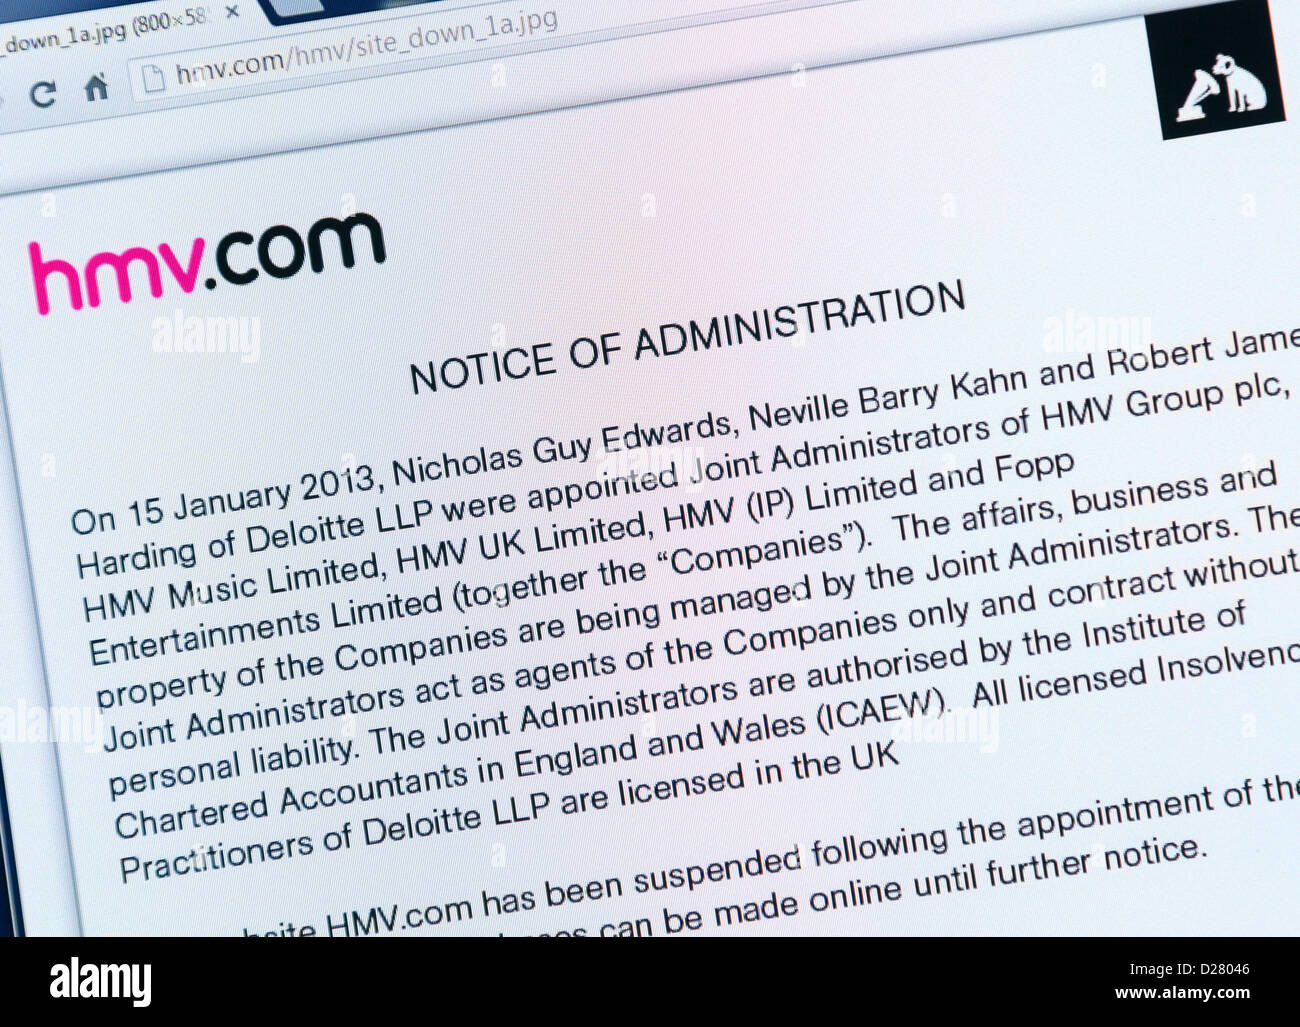 HMV website shows group in administration on January 16th 2013 - Stock Image